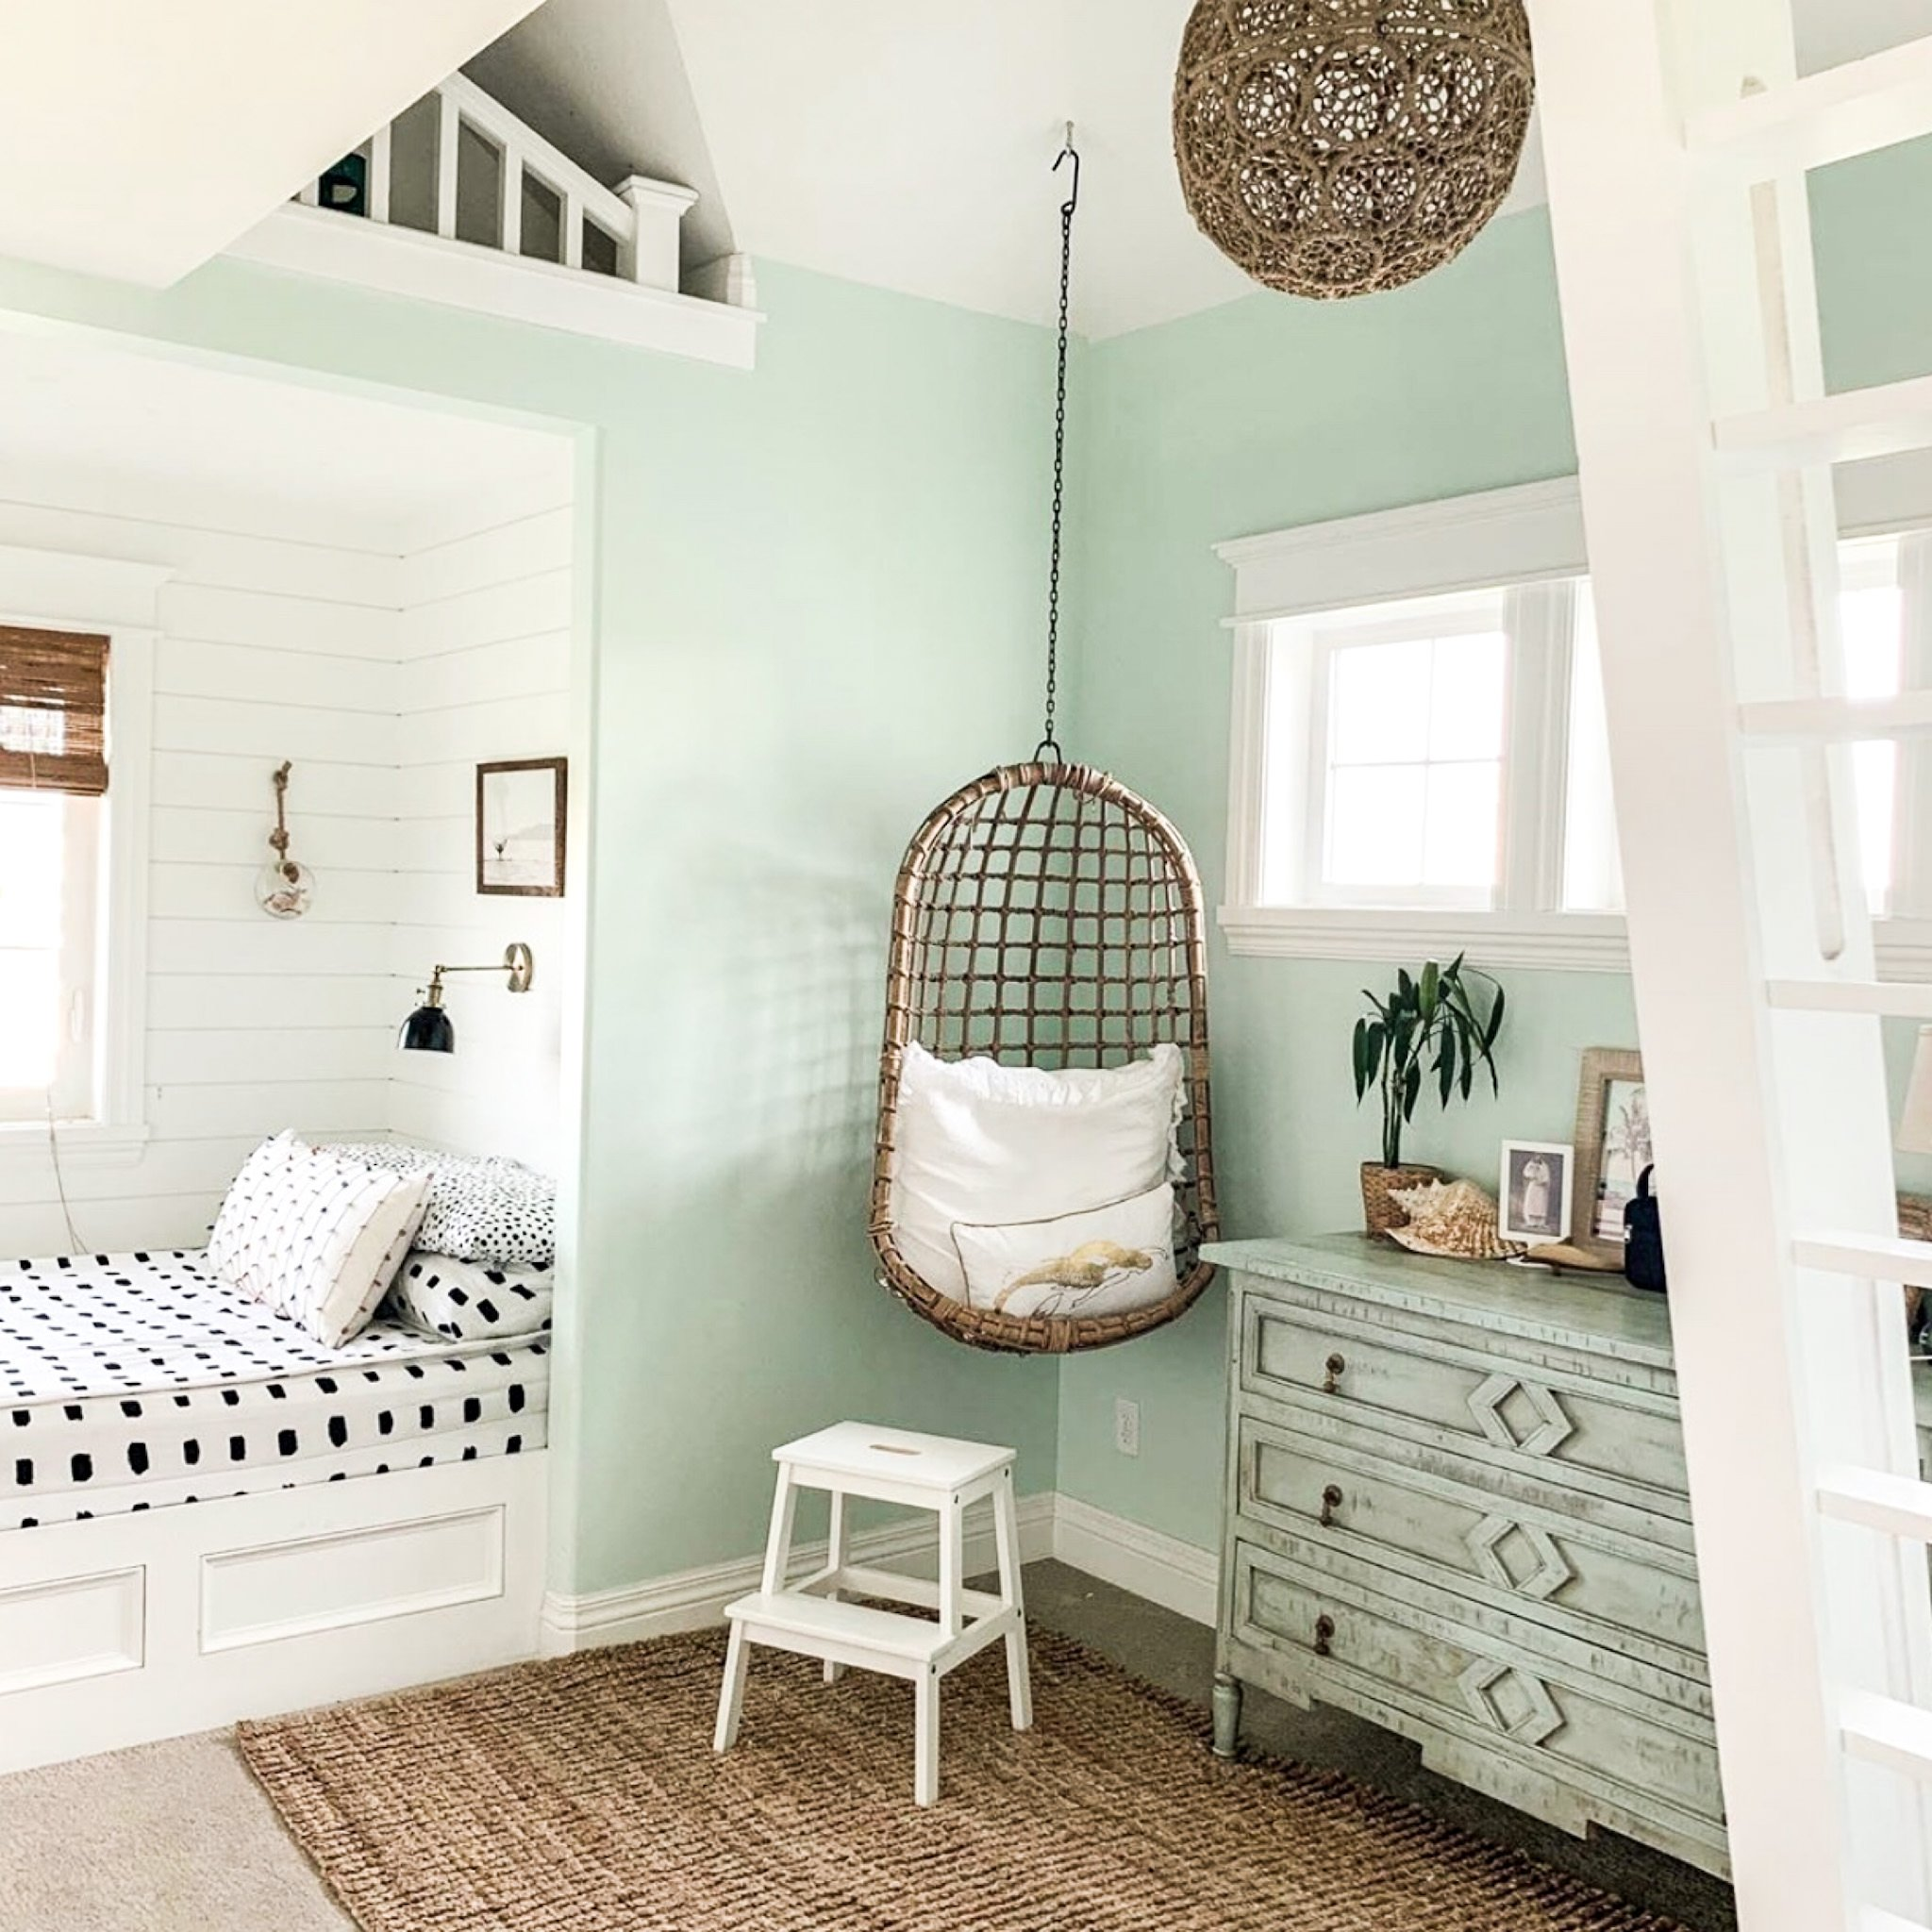 23 Best Teen Girl Room Ideas - Chaylor & Mads